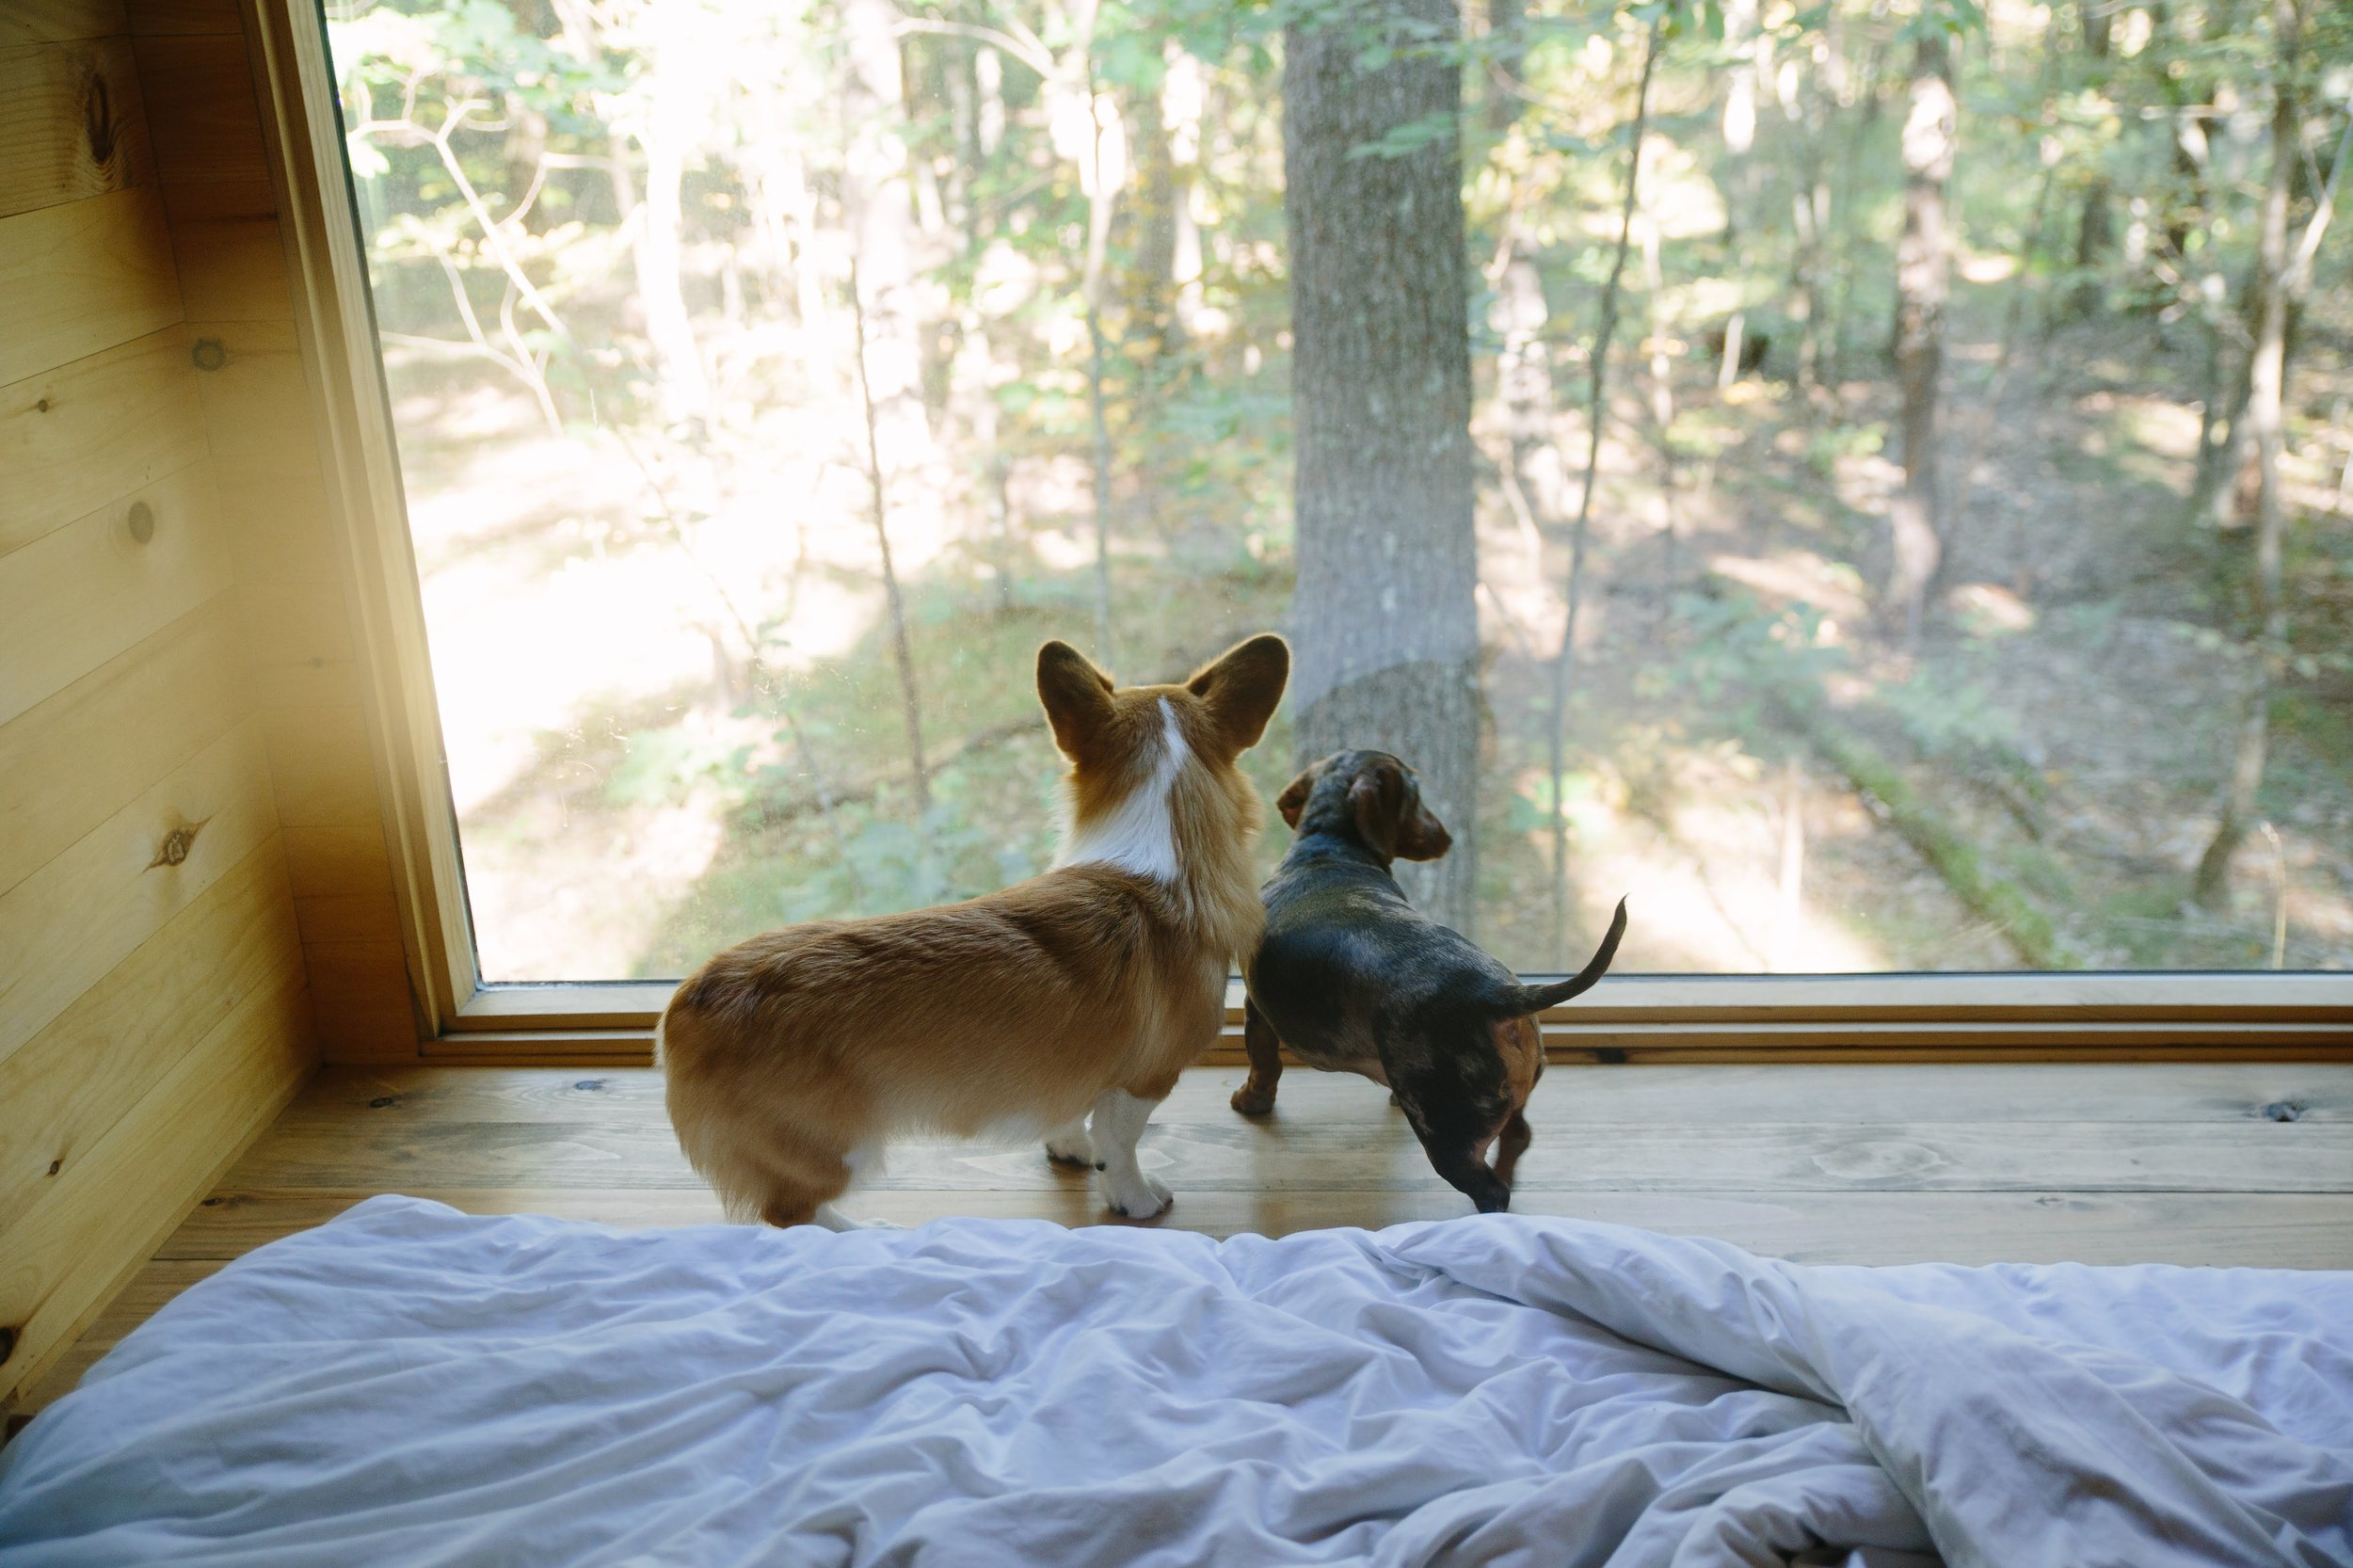 Watching the chipmunks outside.